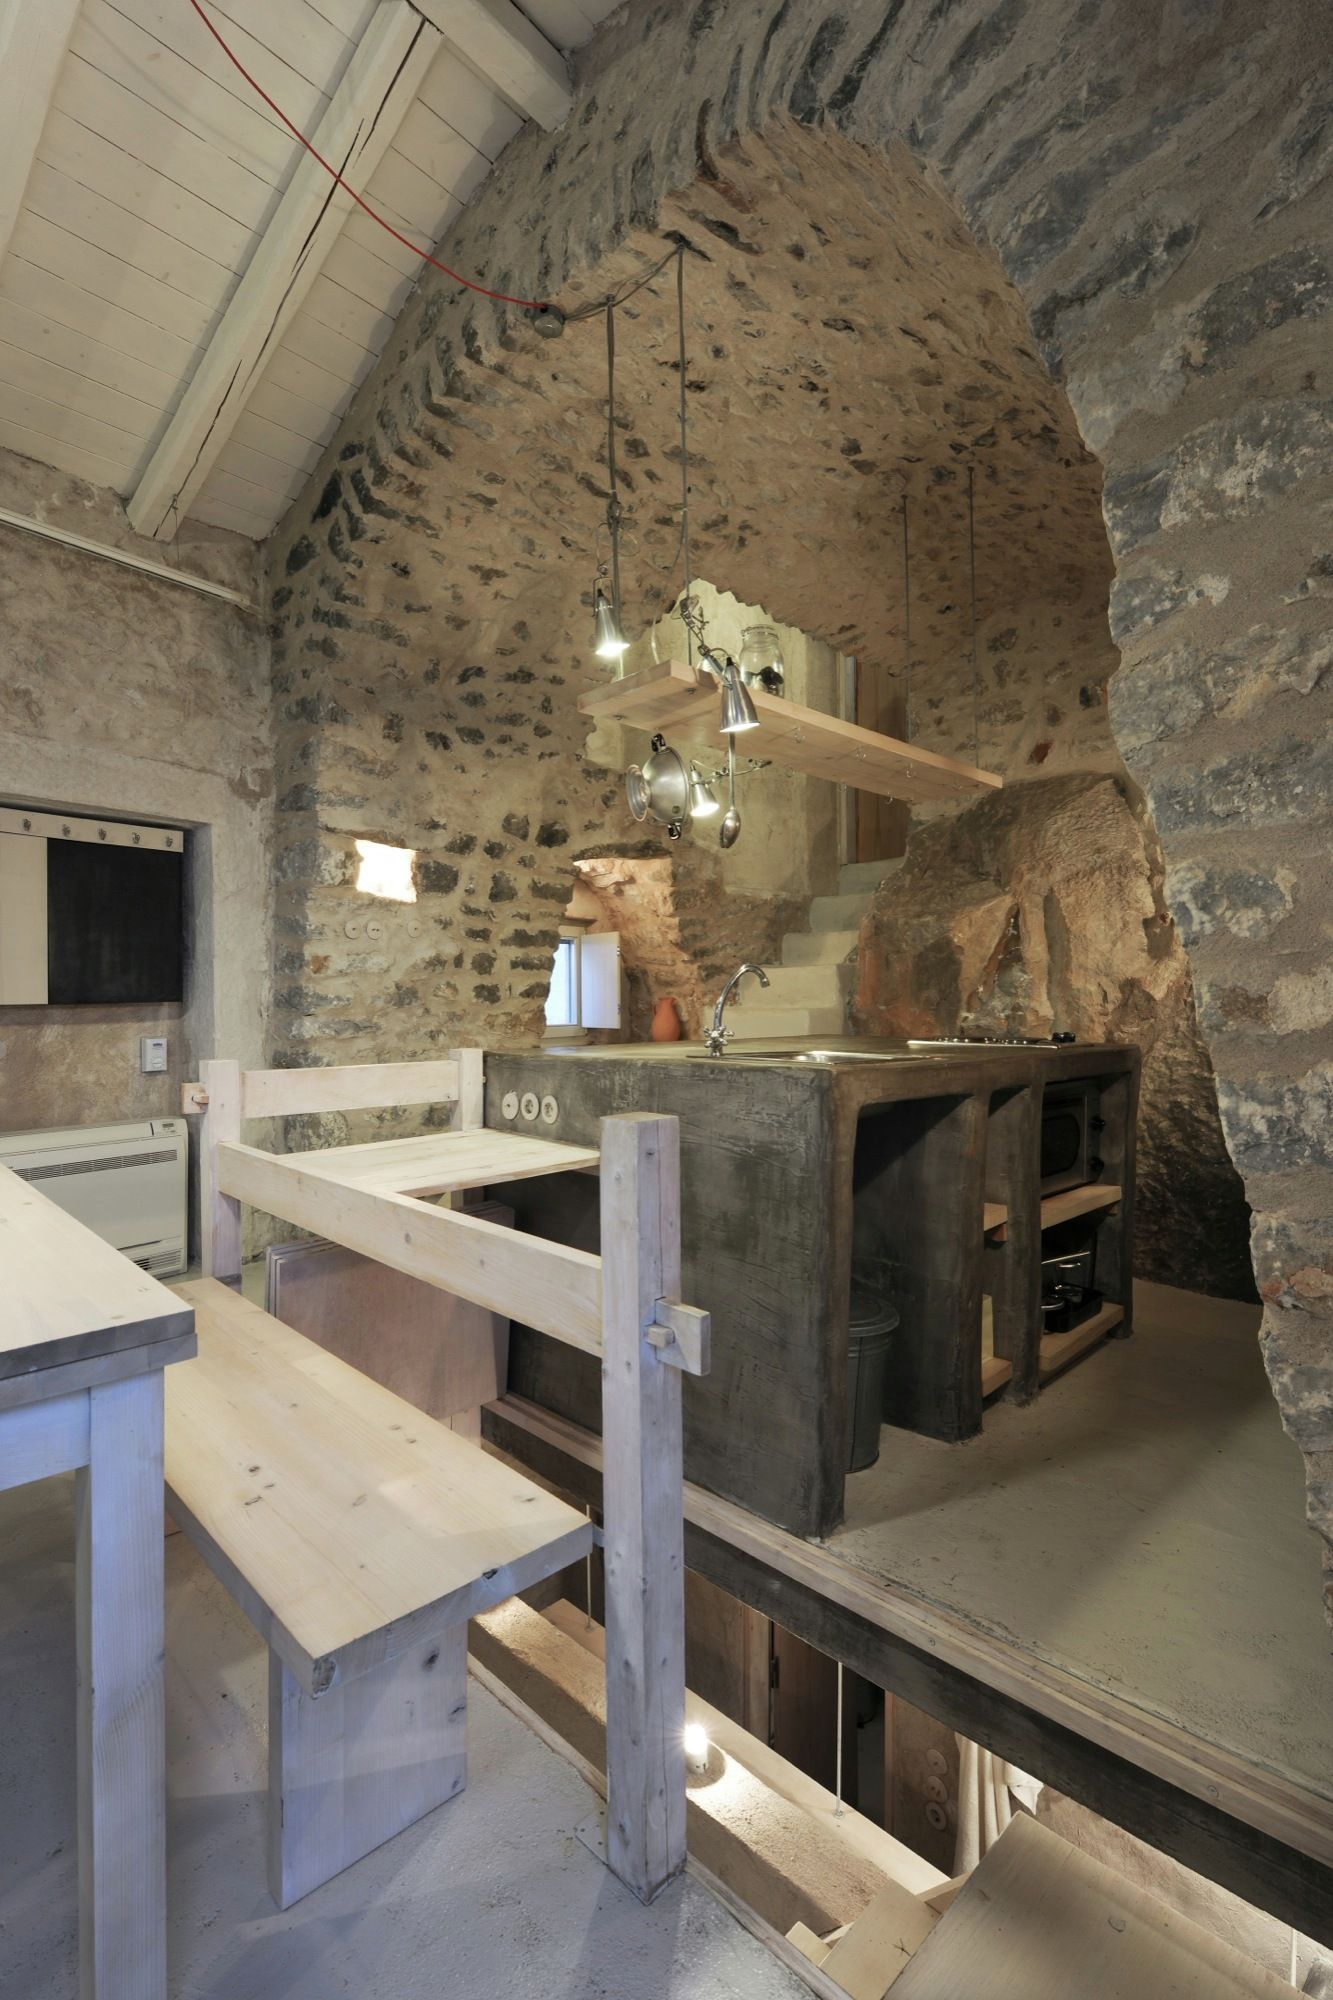 Tower holiday house in Greece stone arch